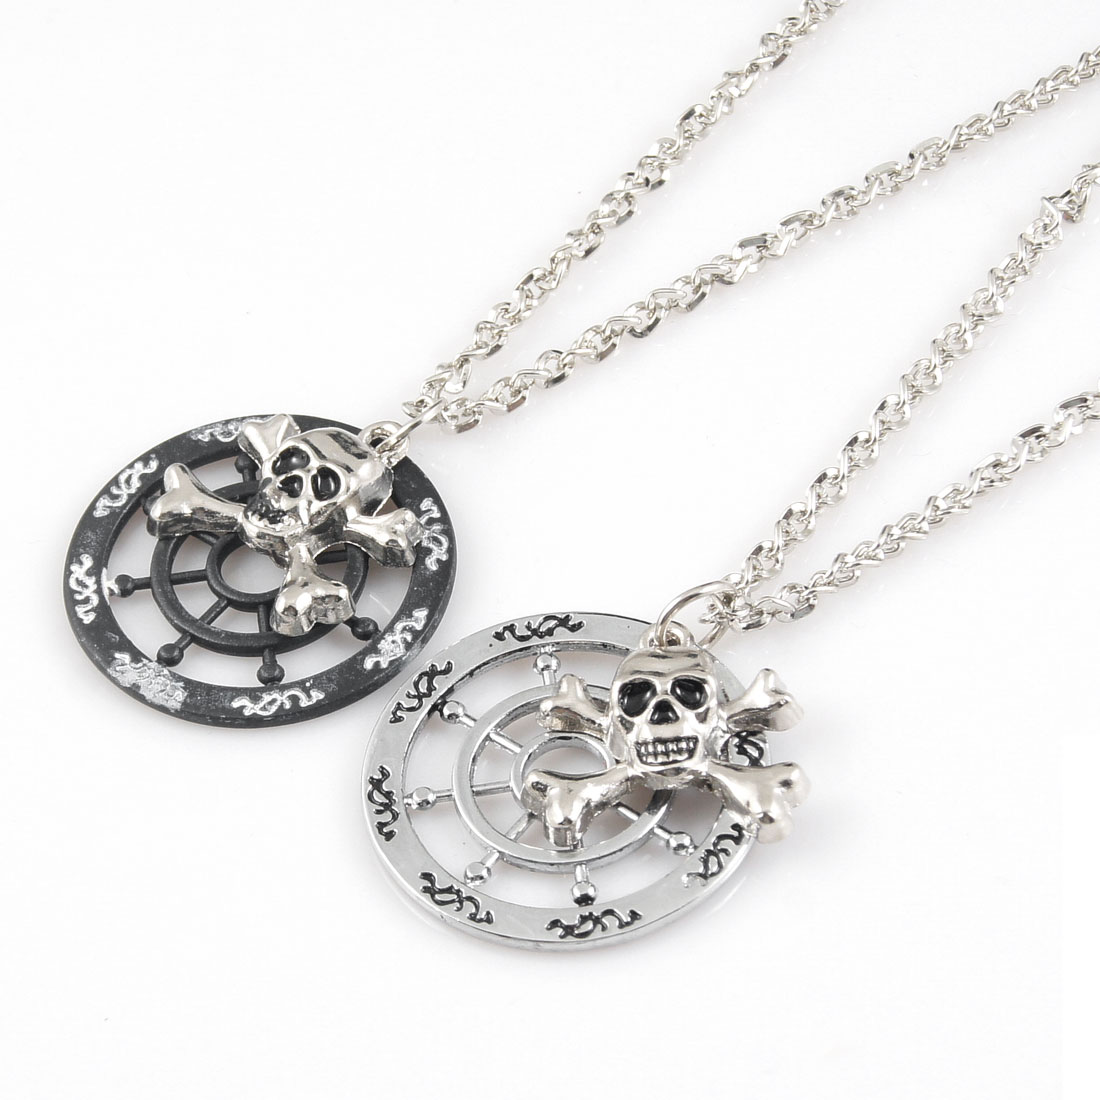 Silver Tone Lobster Clasp Skull Head Ship Wheel Pendant Necklace Pair for Lovers